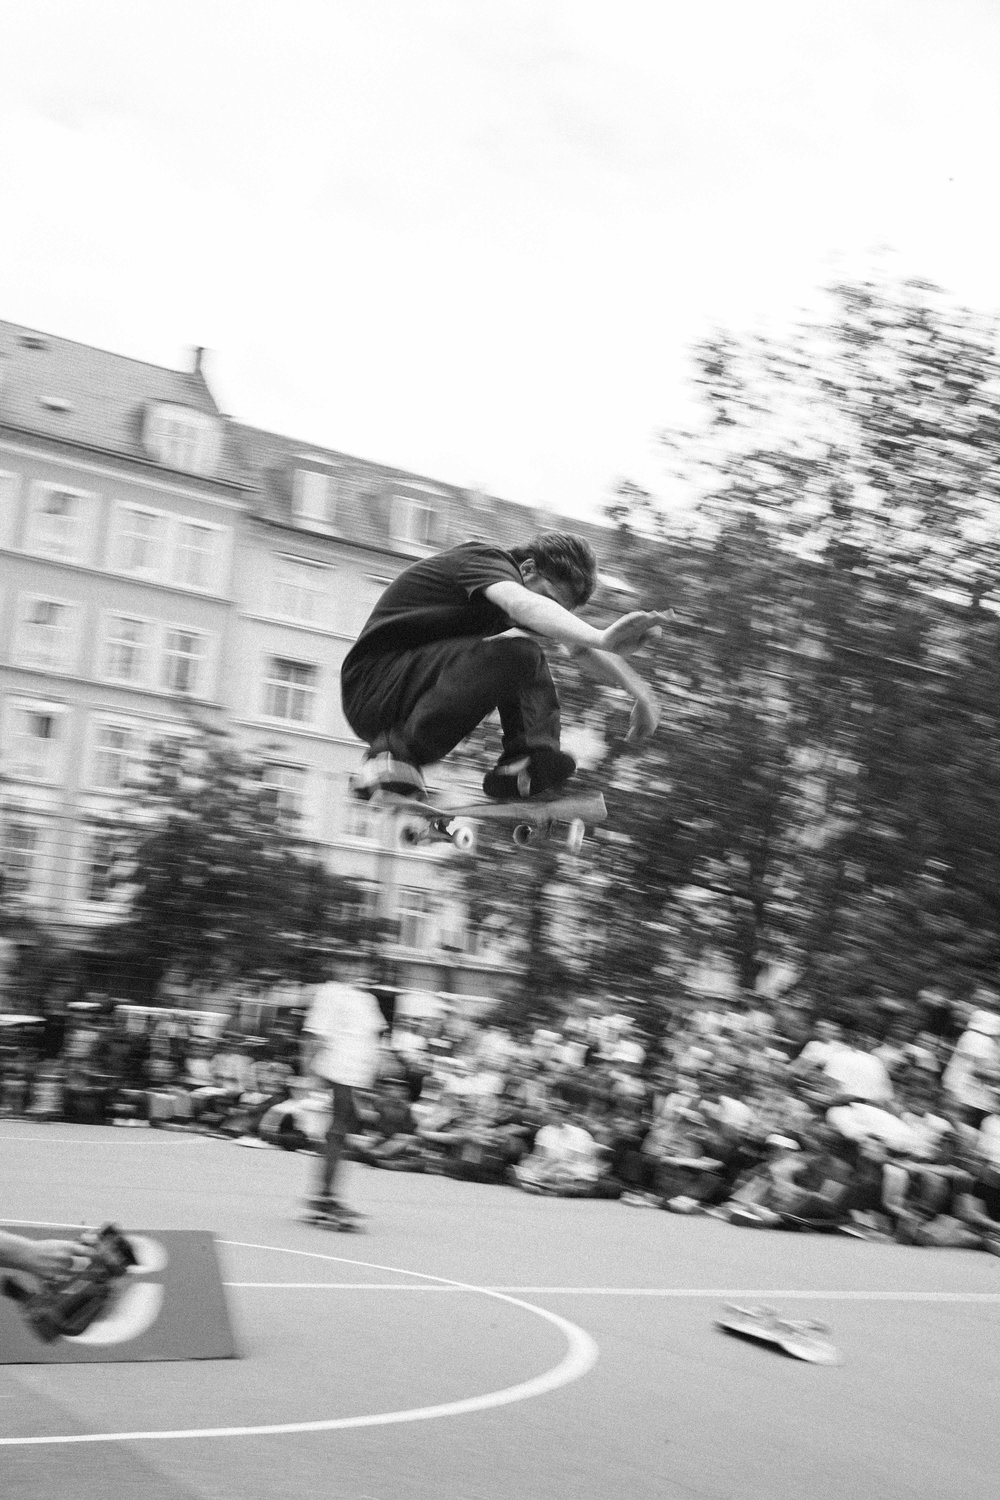 Yuri Facchini, and his infamous shifty flip. Photography by Luca Werner.